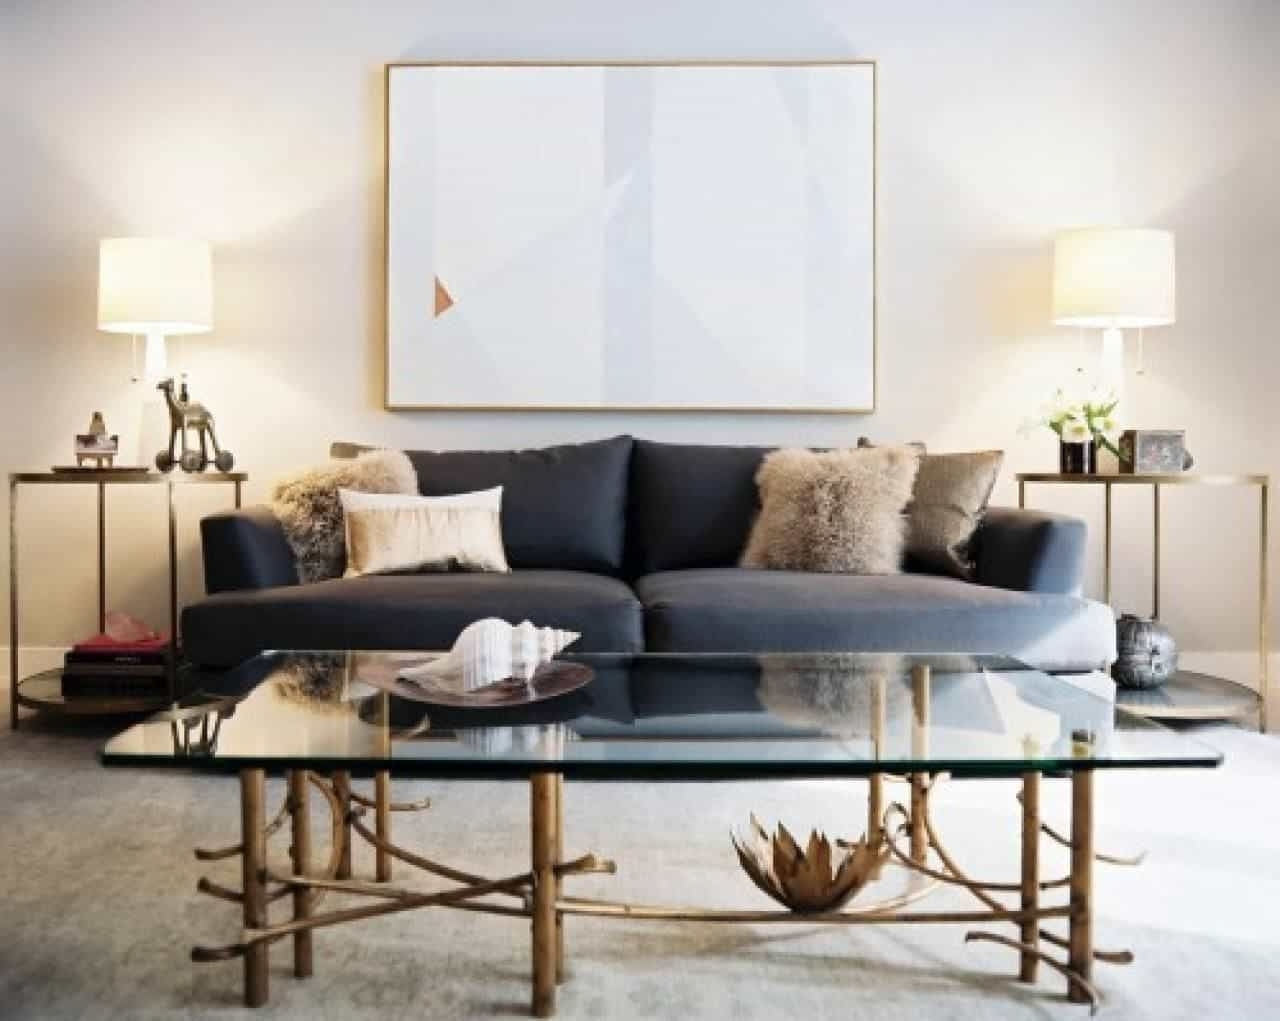 Famous Table Lamps For Modern Living Room Inside Modern Living Room With Grey Sofa And Side Tables With Table Lamps (View 7 of 20)